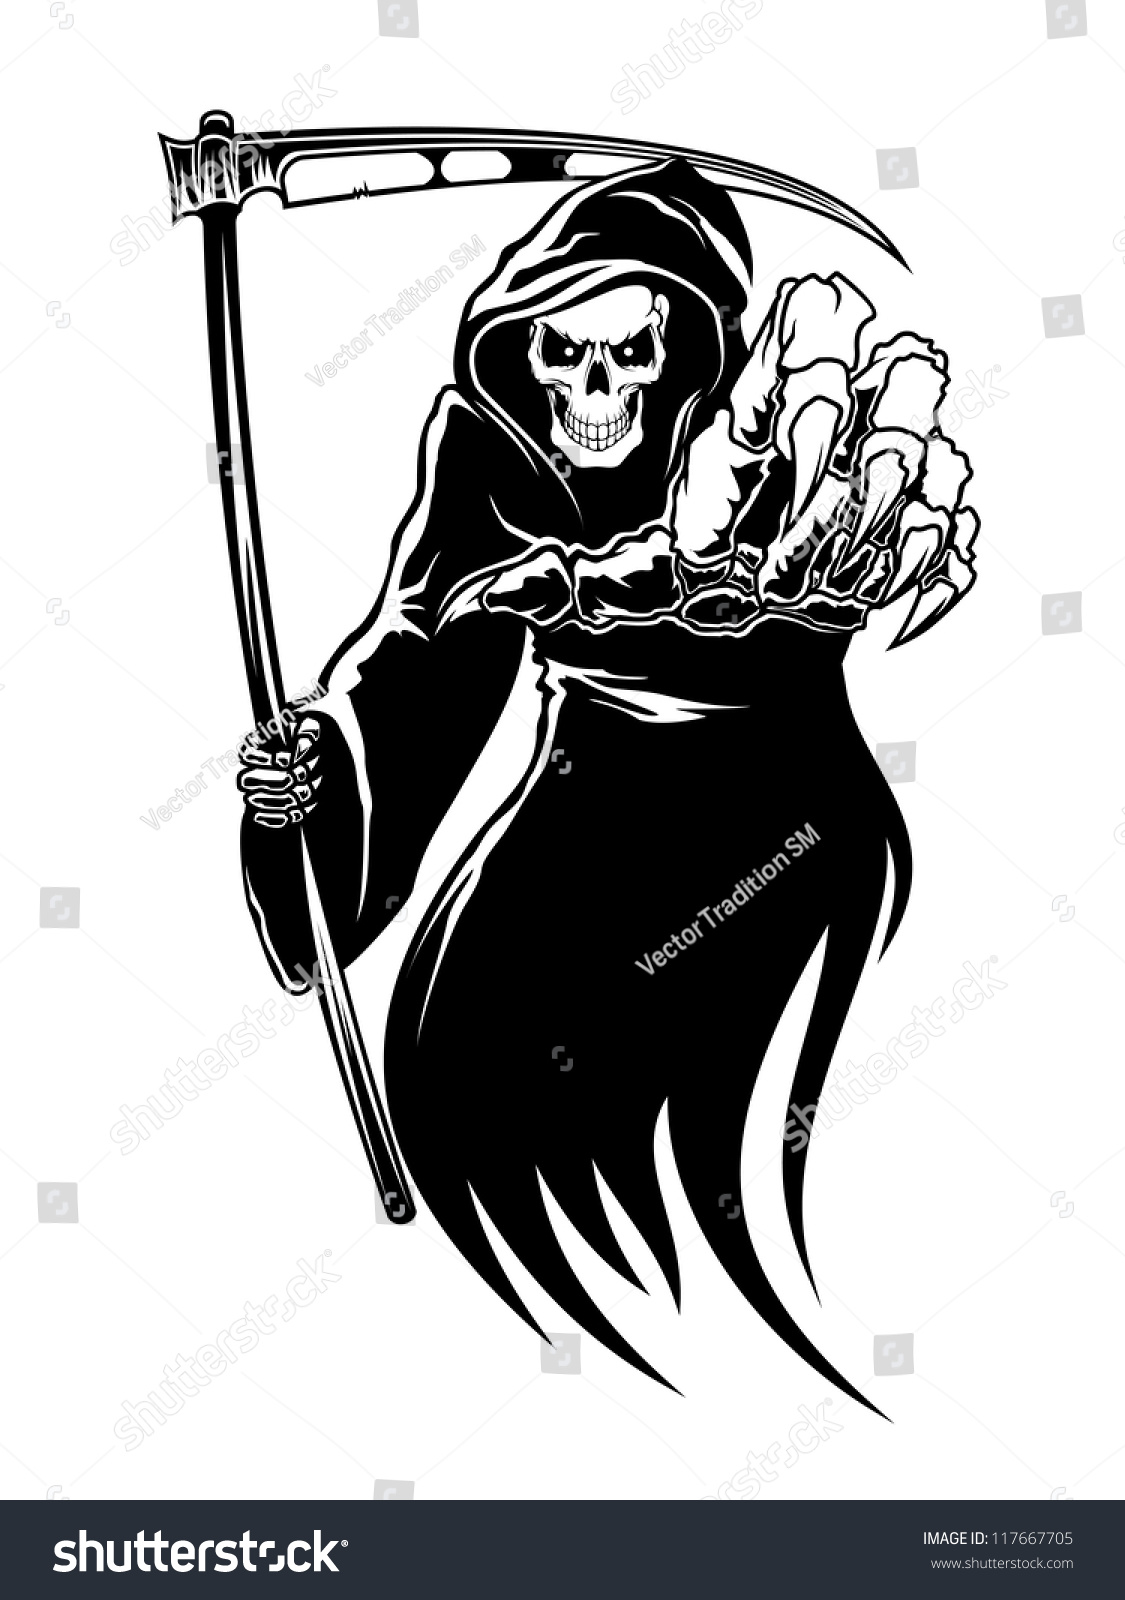 Black plague grim reaper